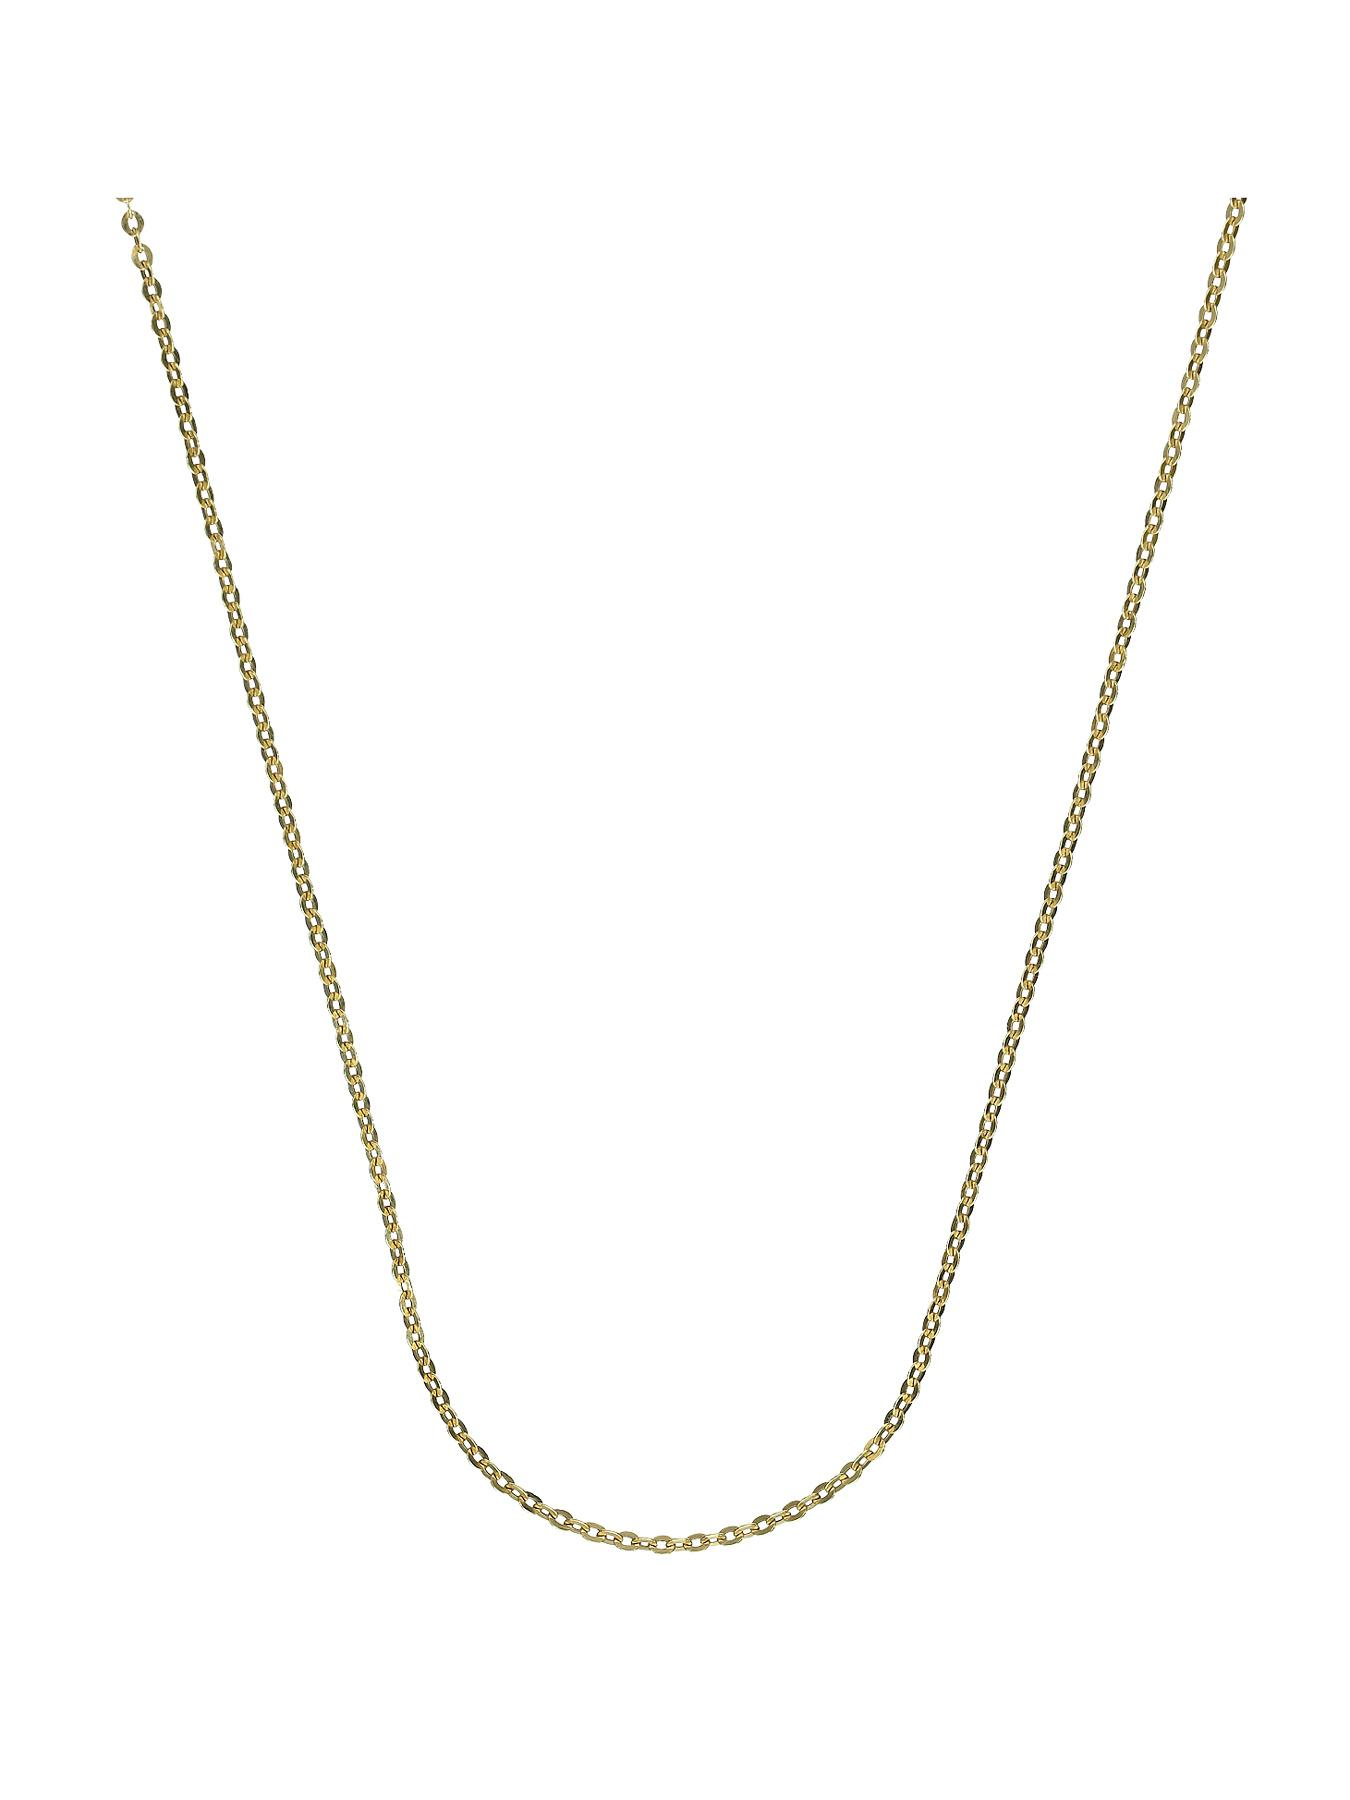 Sterling Silver and 9 Carat Yellow Gold Bonded Chain 20 inch